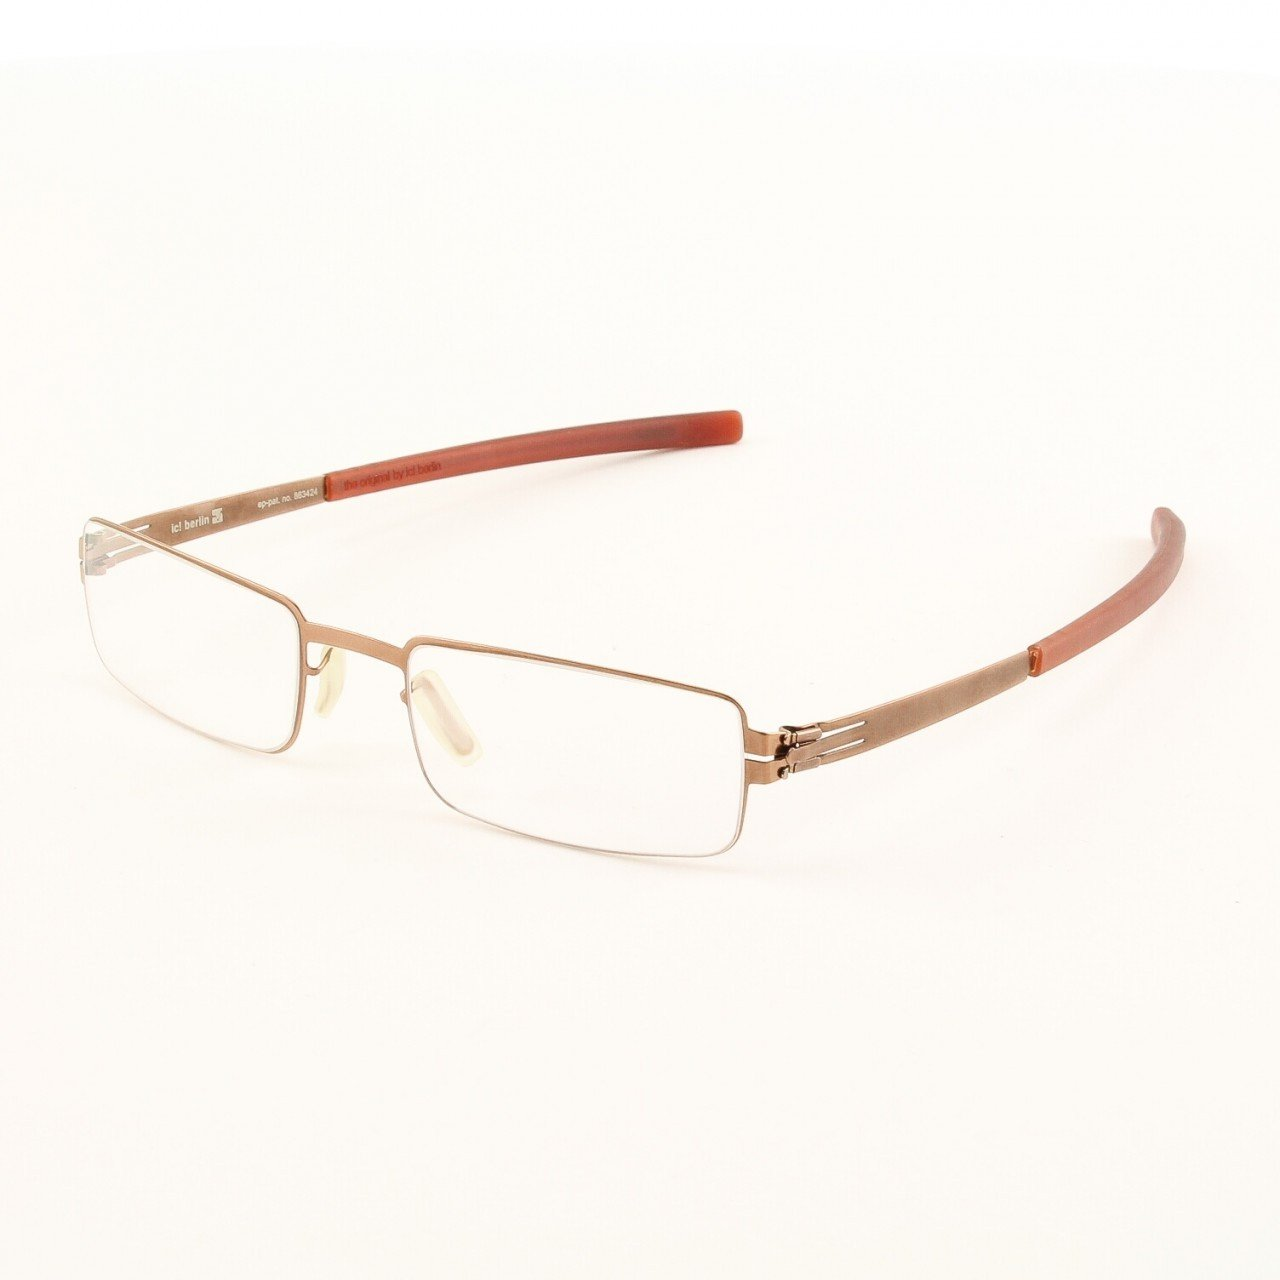 ic! Berlin Fritz W. Eyeglasses Col. Copper with Clear Lenses